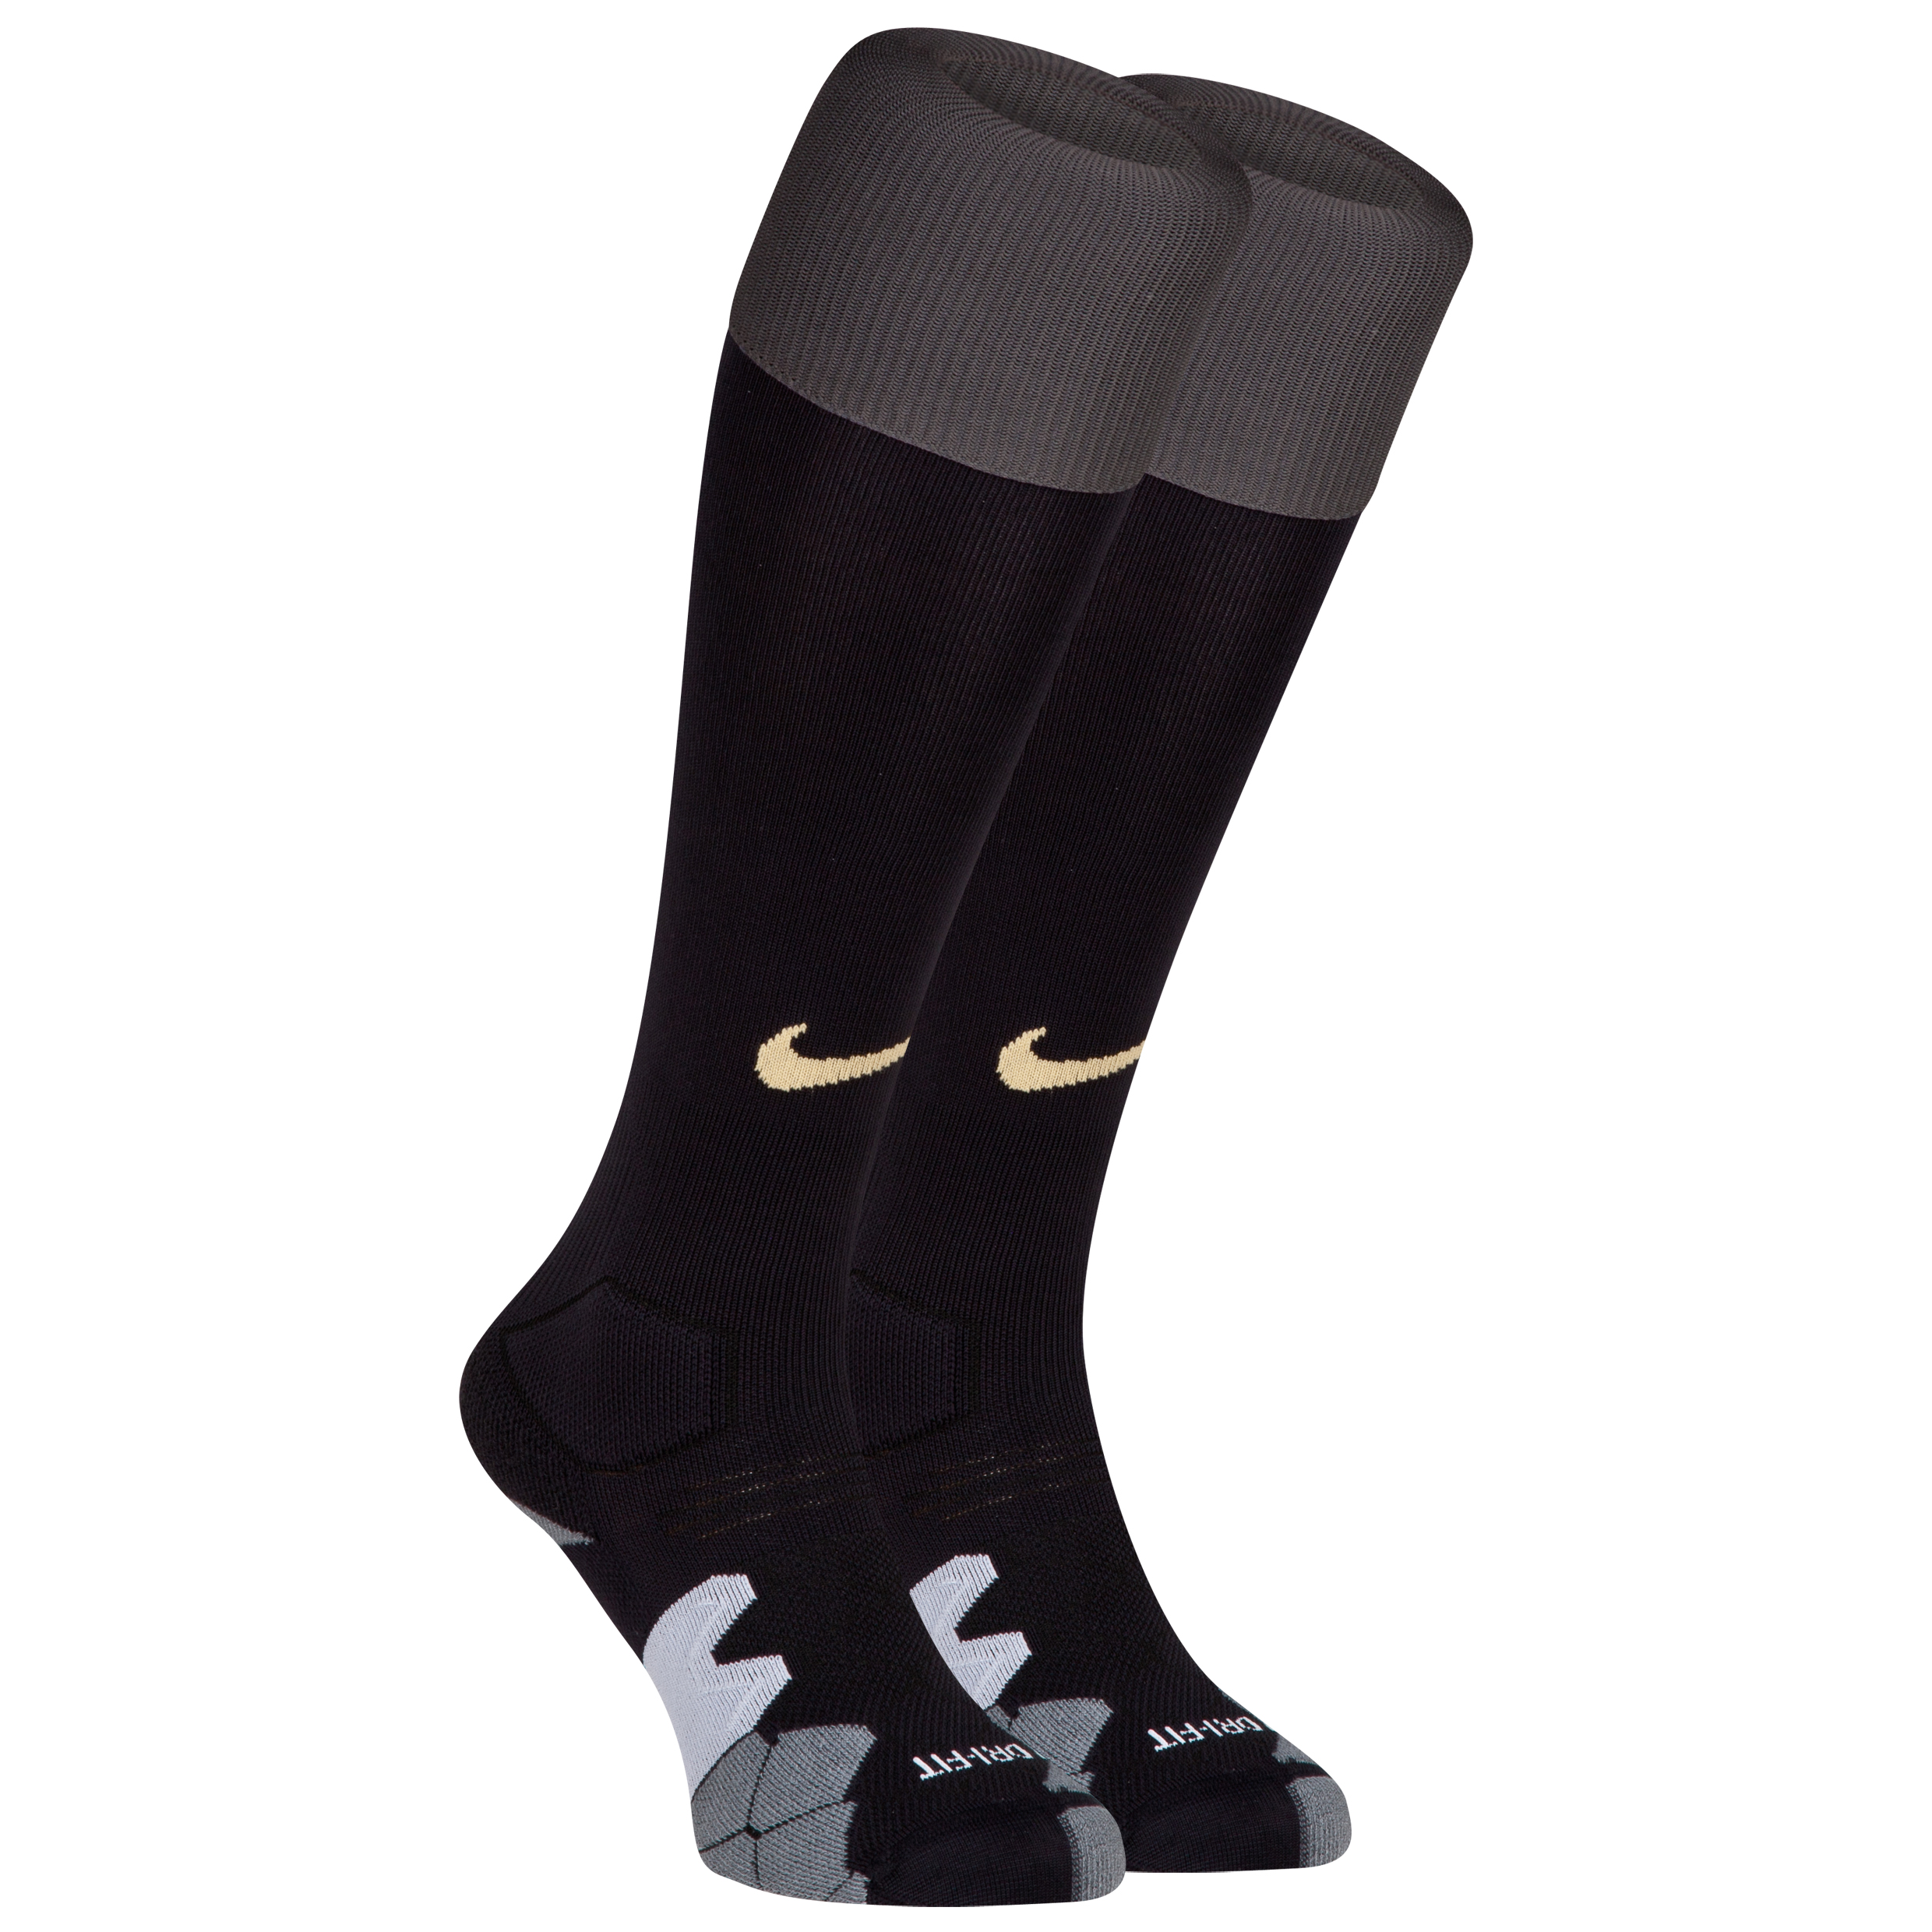 Manchester City Away Sock 2013/14